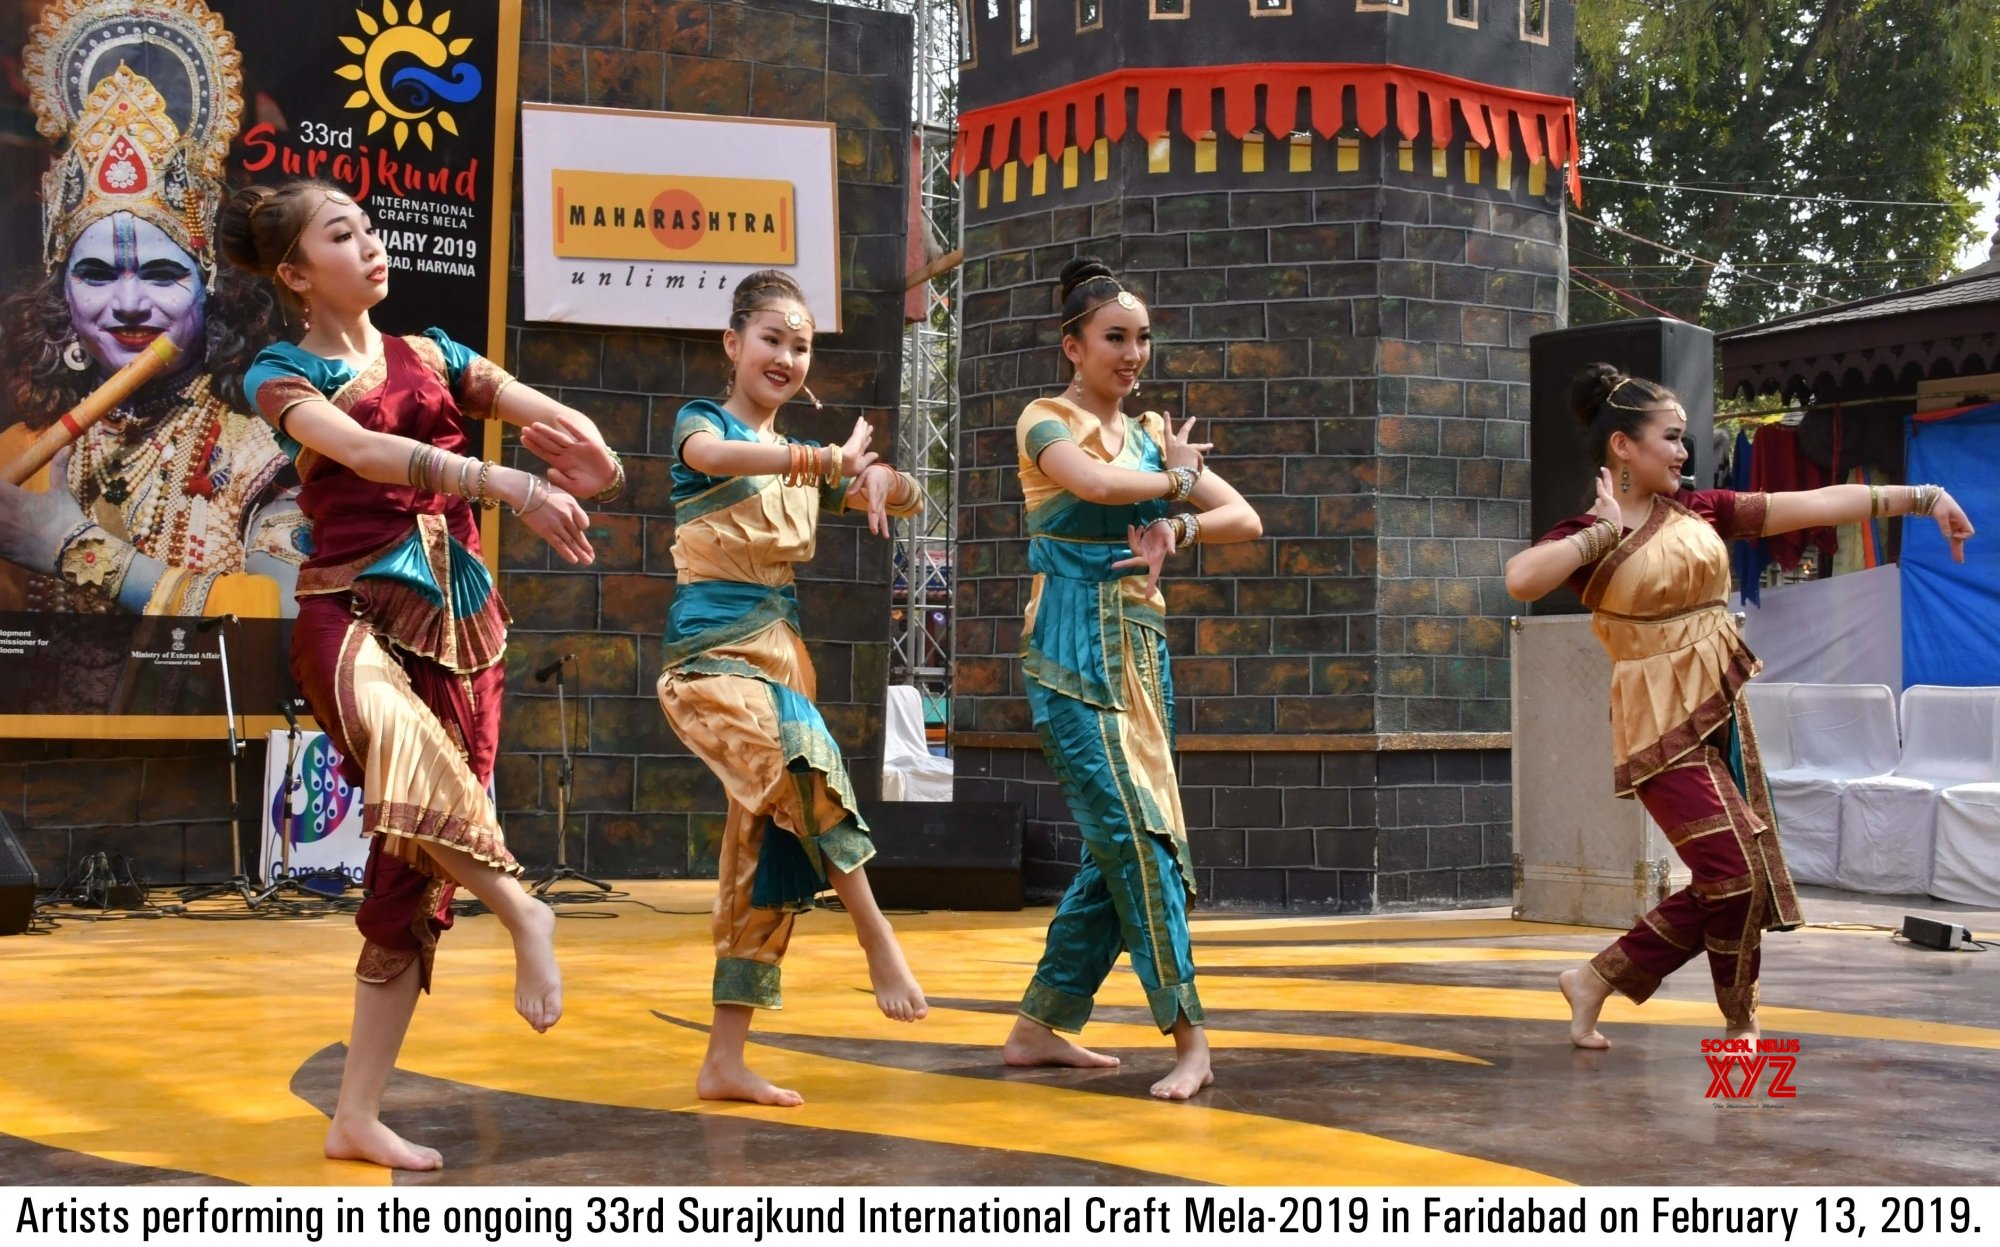 Faridabad: 33rd Surajkund International Craft Mela - 2019 #Gallery